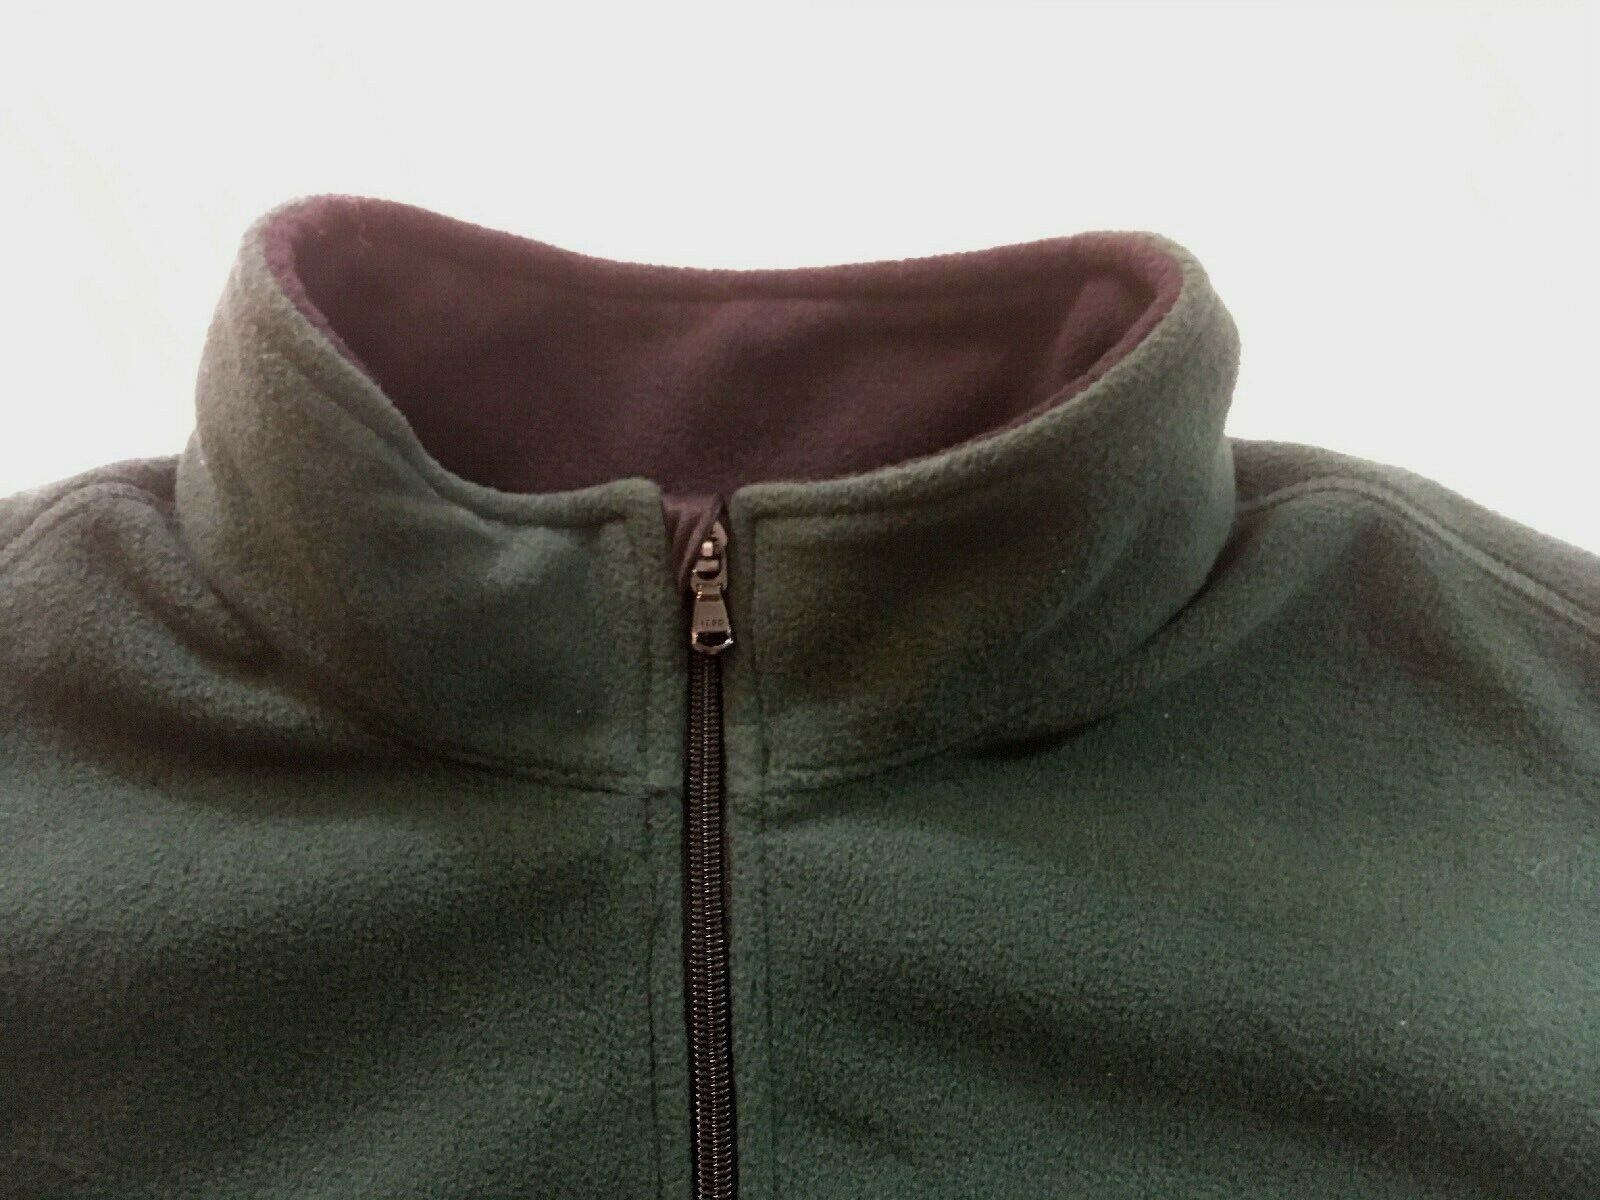 IZOD Full-Zip Polar Fleece Jacket Big & Tall Hunter Green w/ Black Trim 2XLT $70 image 2